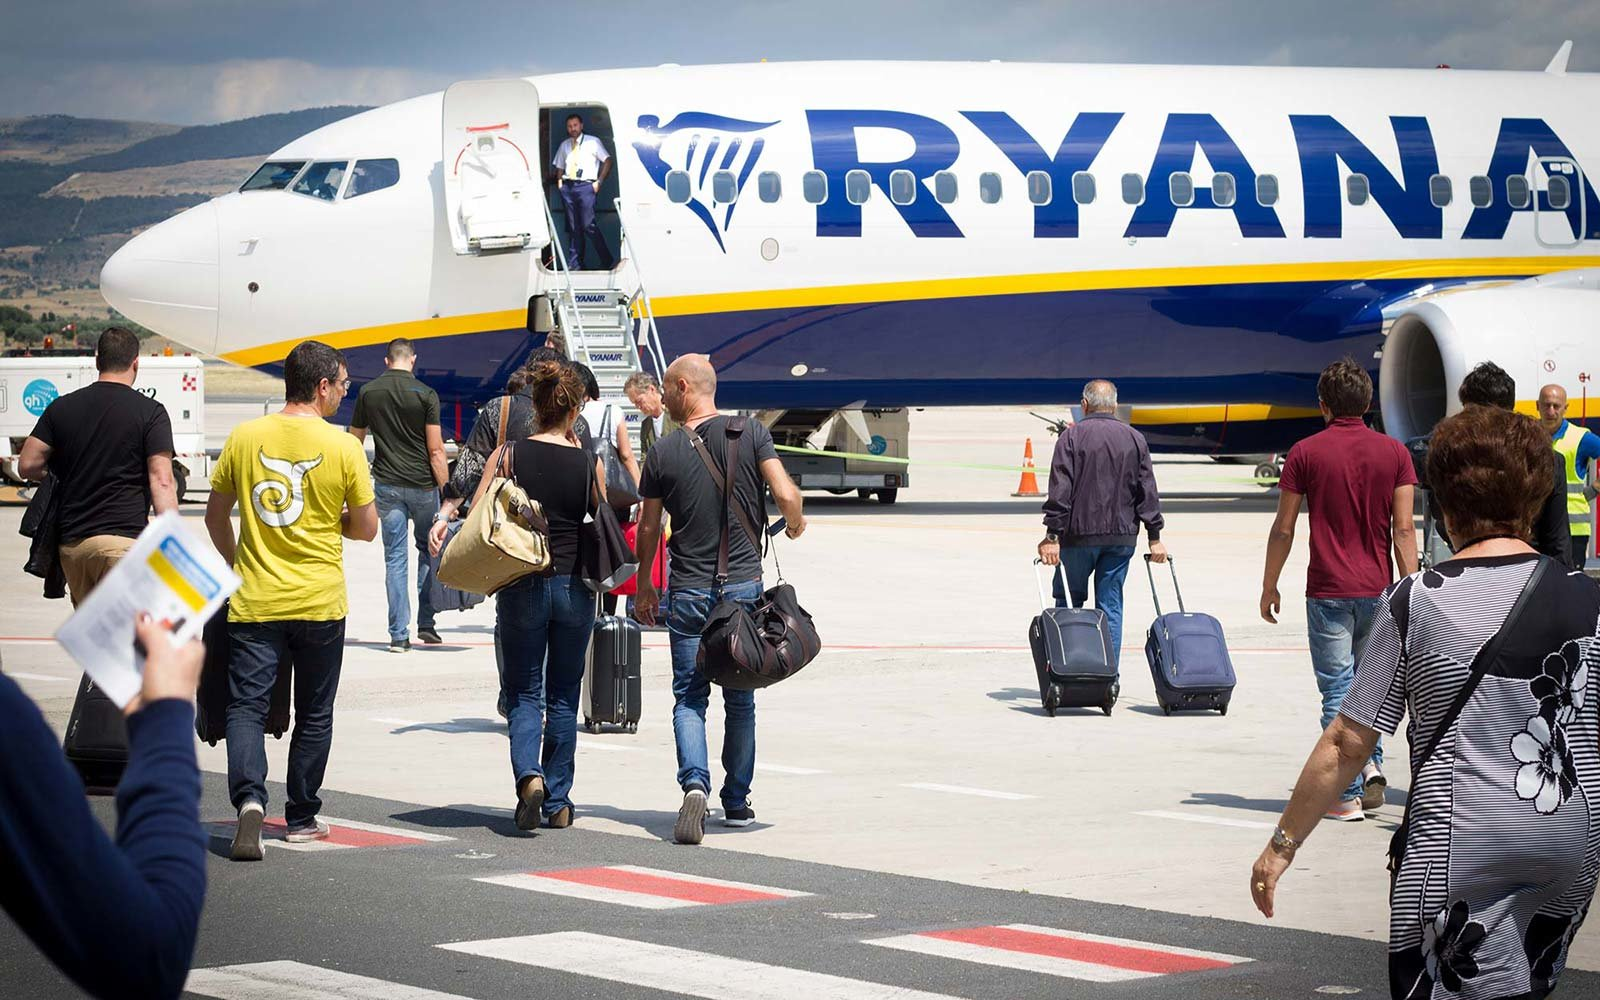 Ryanair Announces Change To Carry-On Luggage Policy